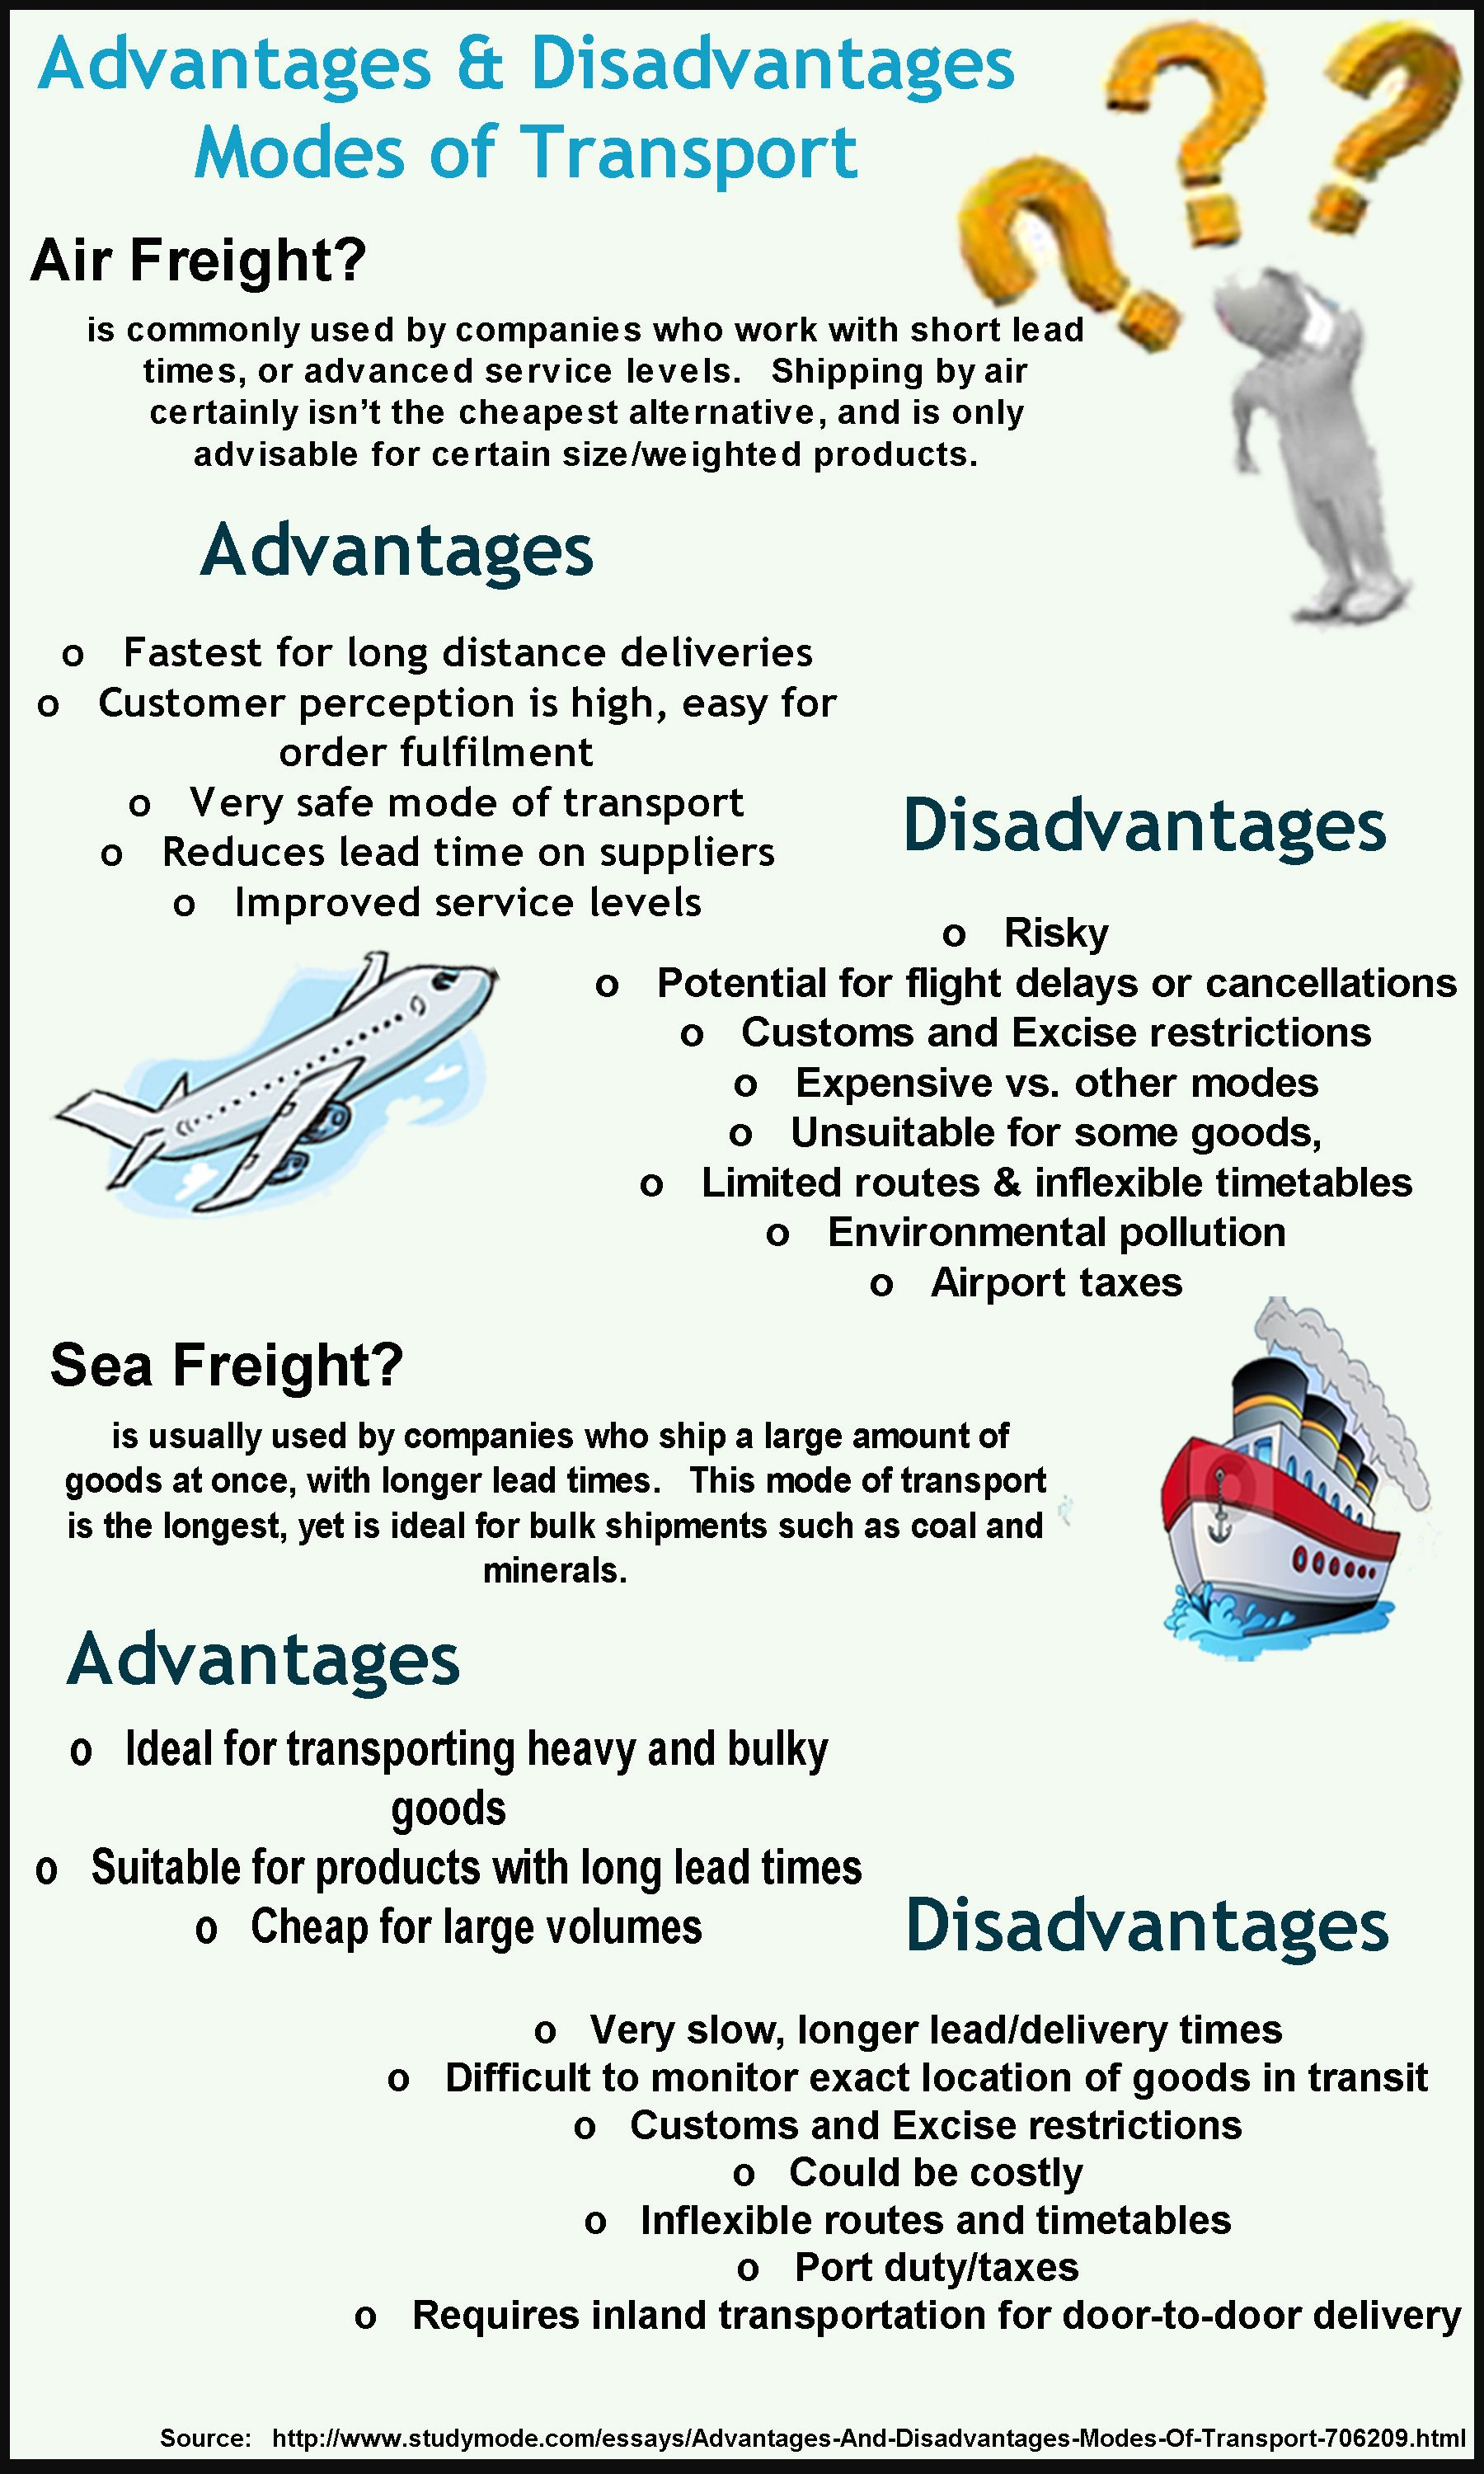 The Advantages And Disadvantages Of The Different Modes Of